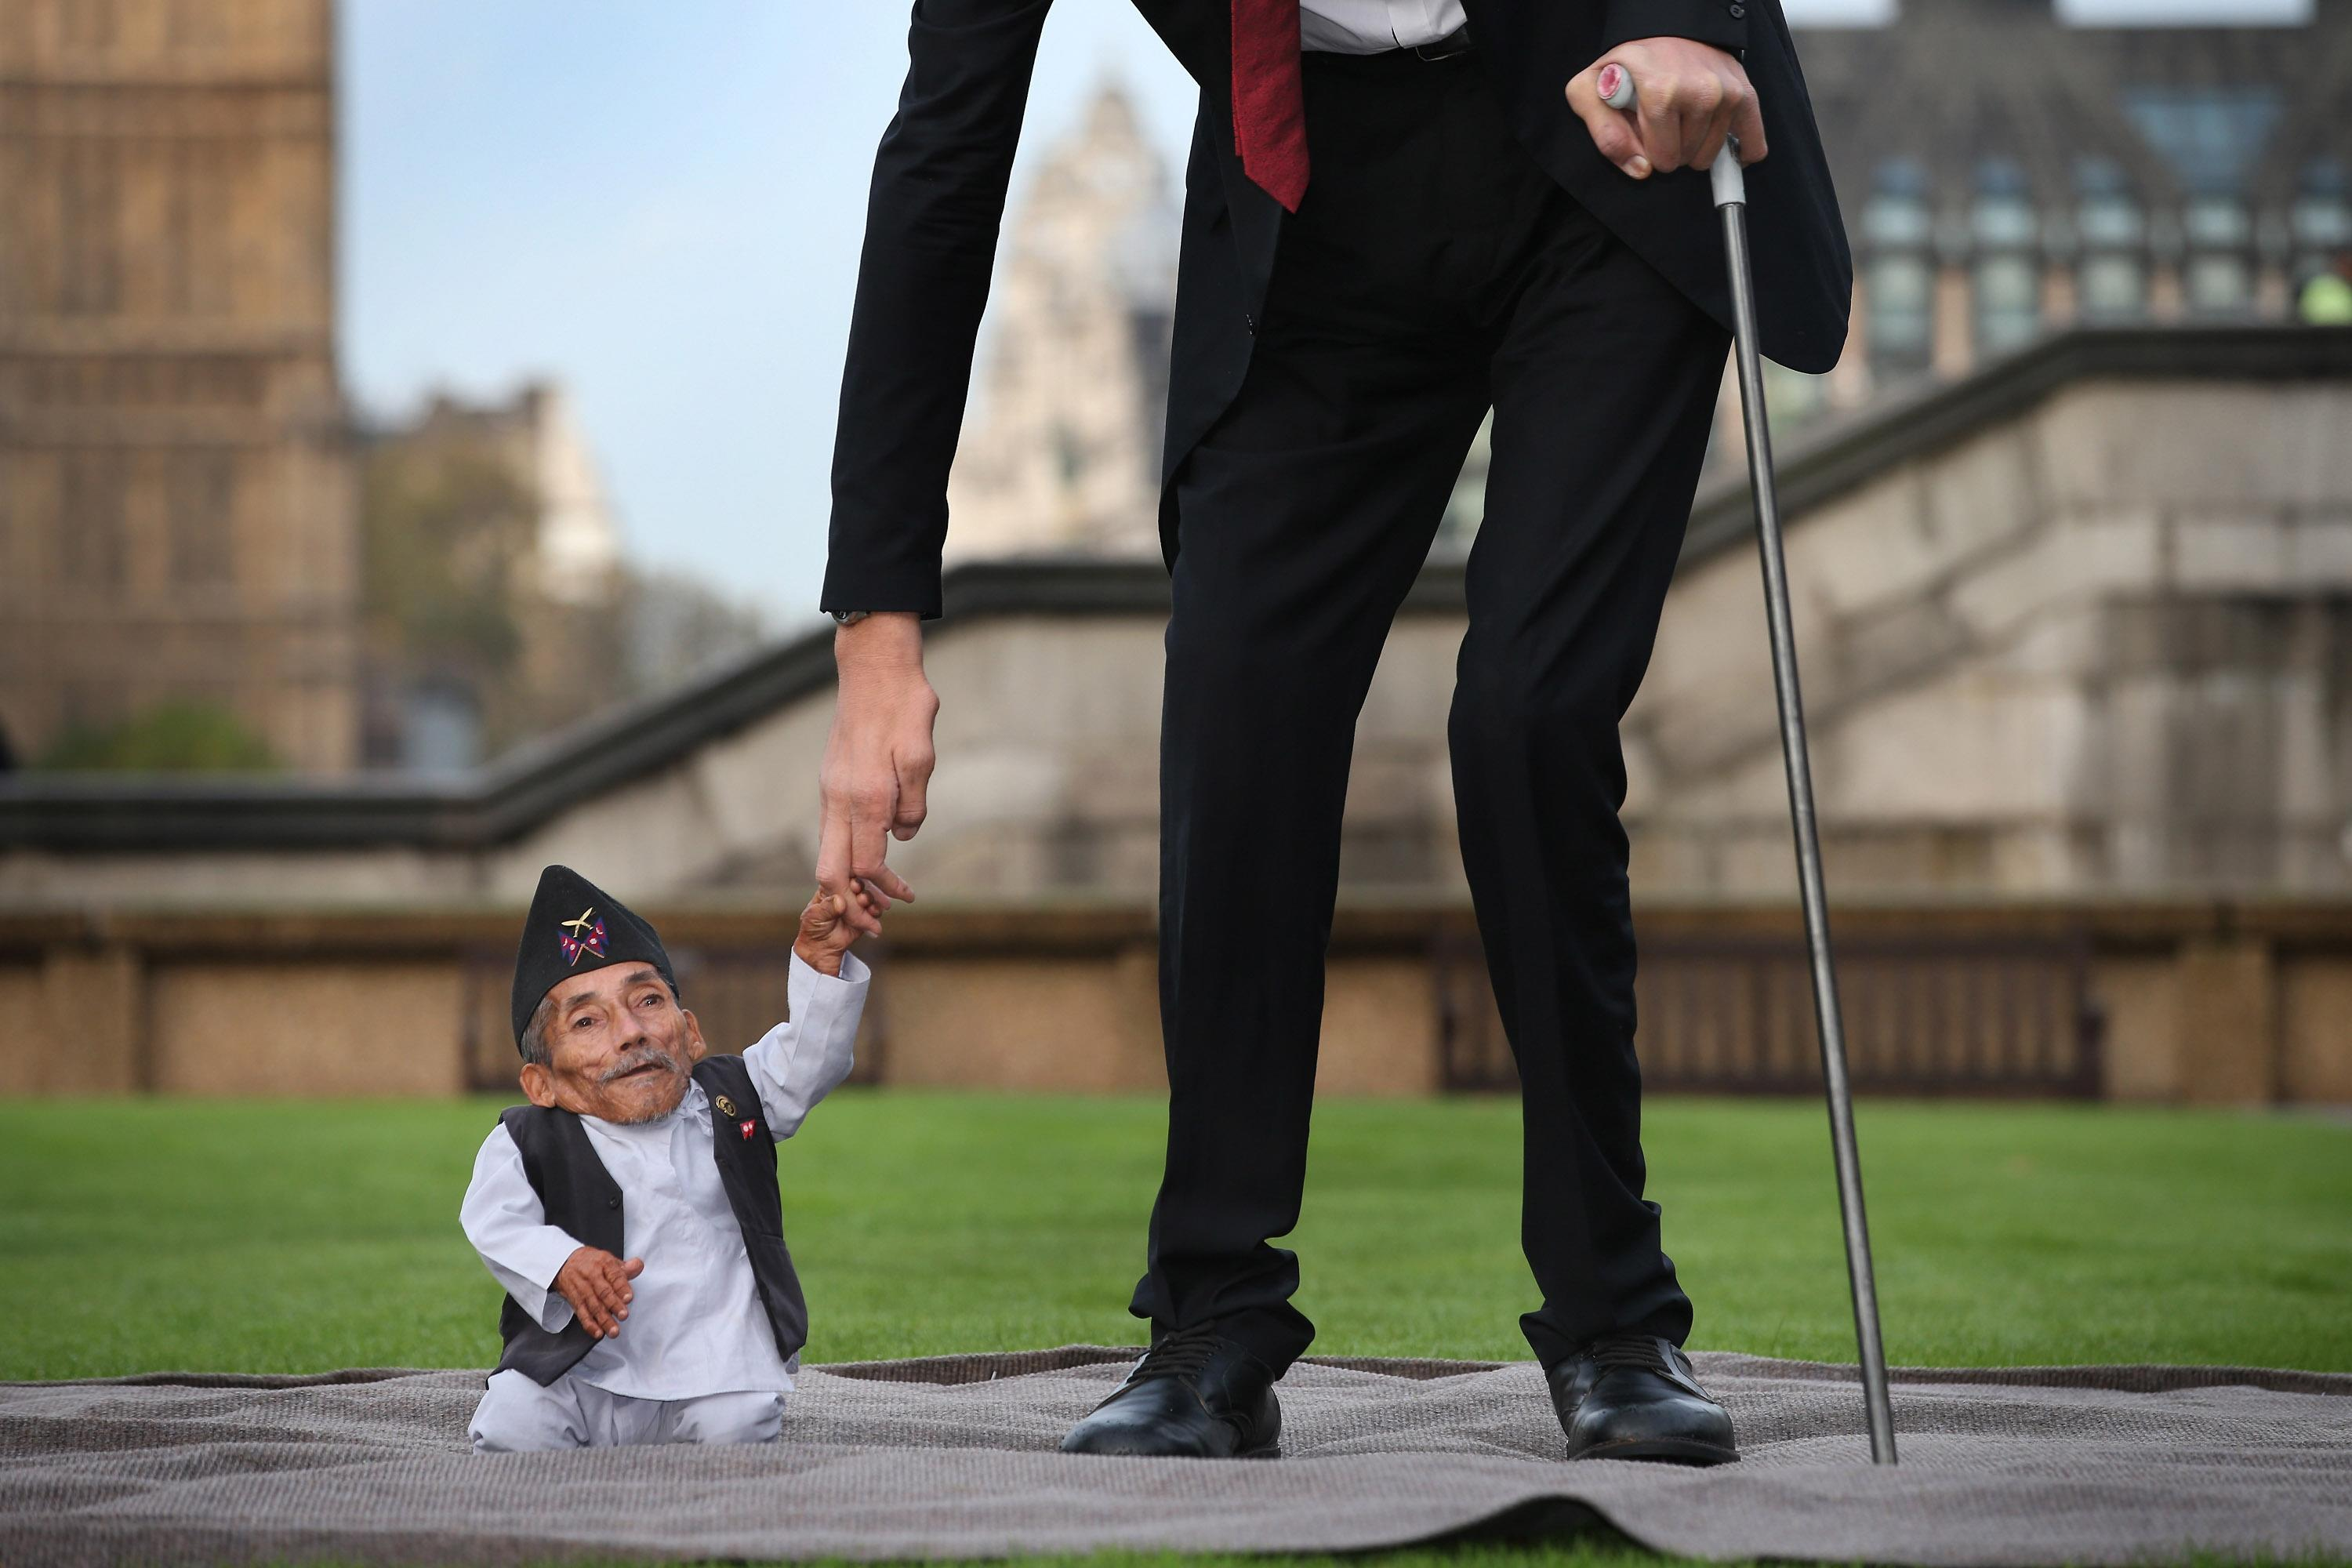 Smallest And Tallest Person In The World